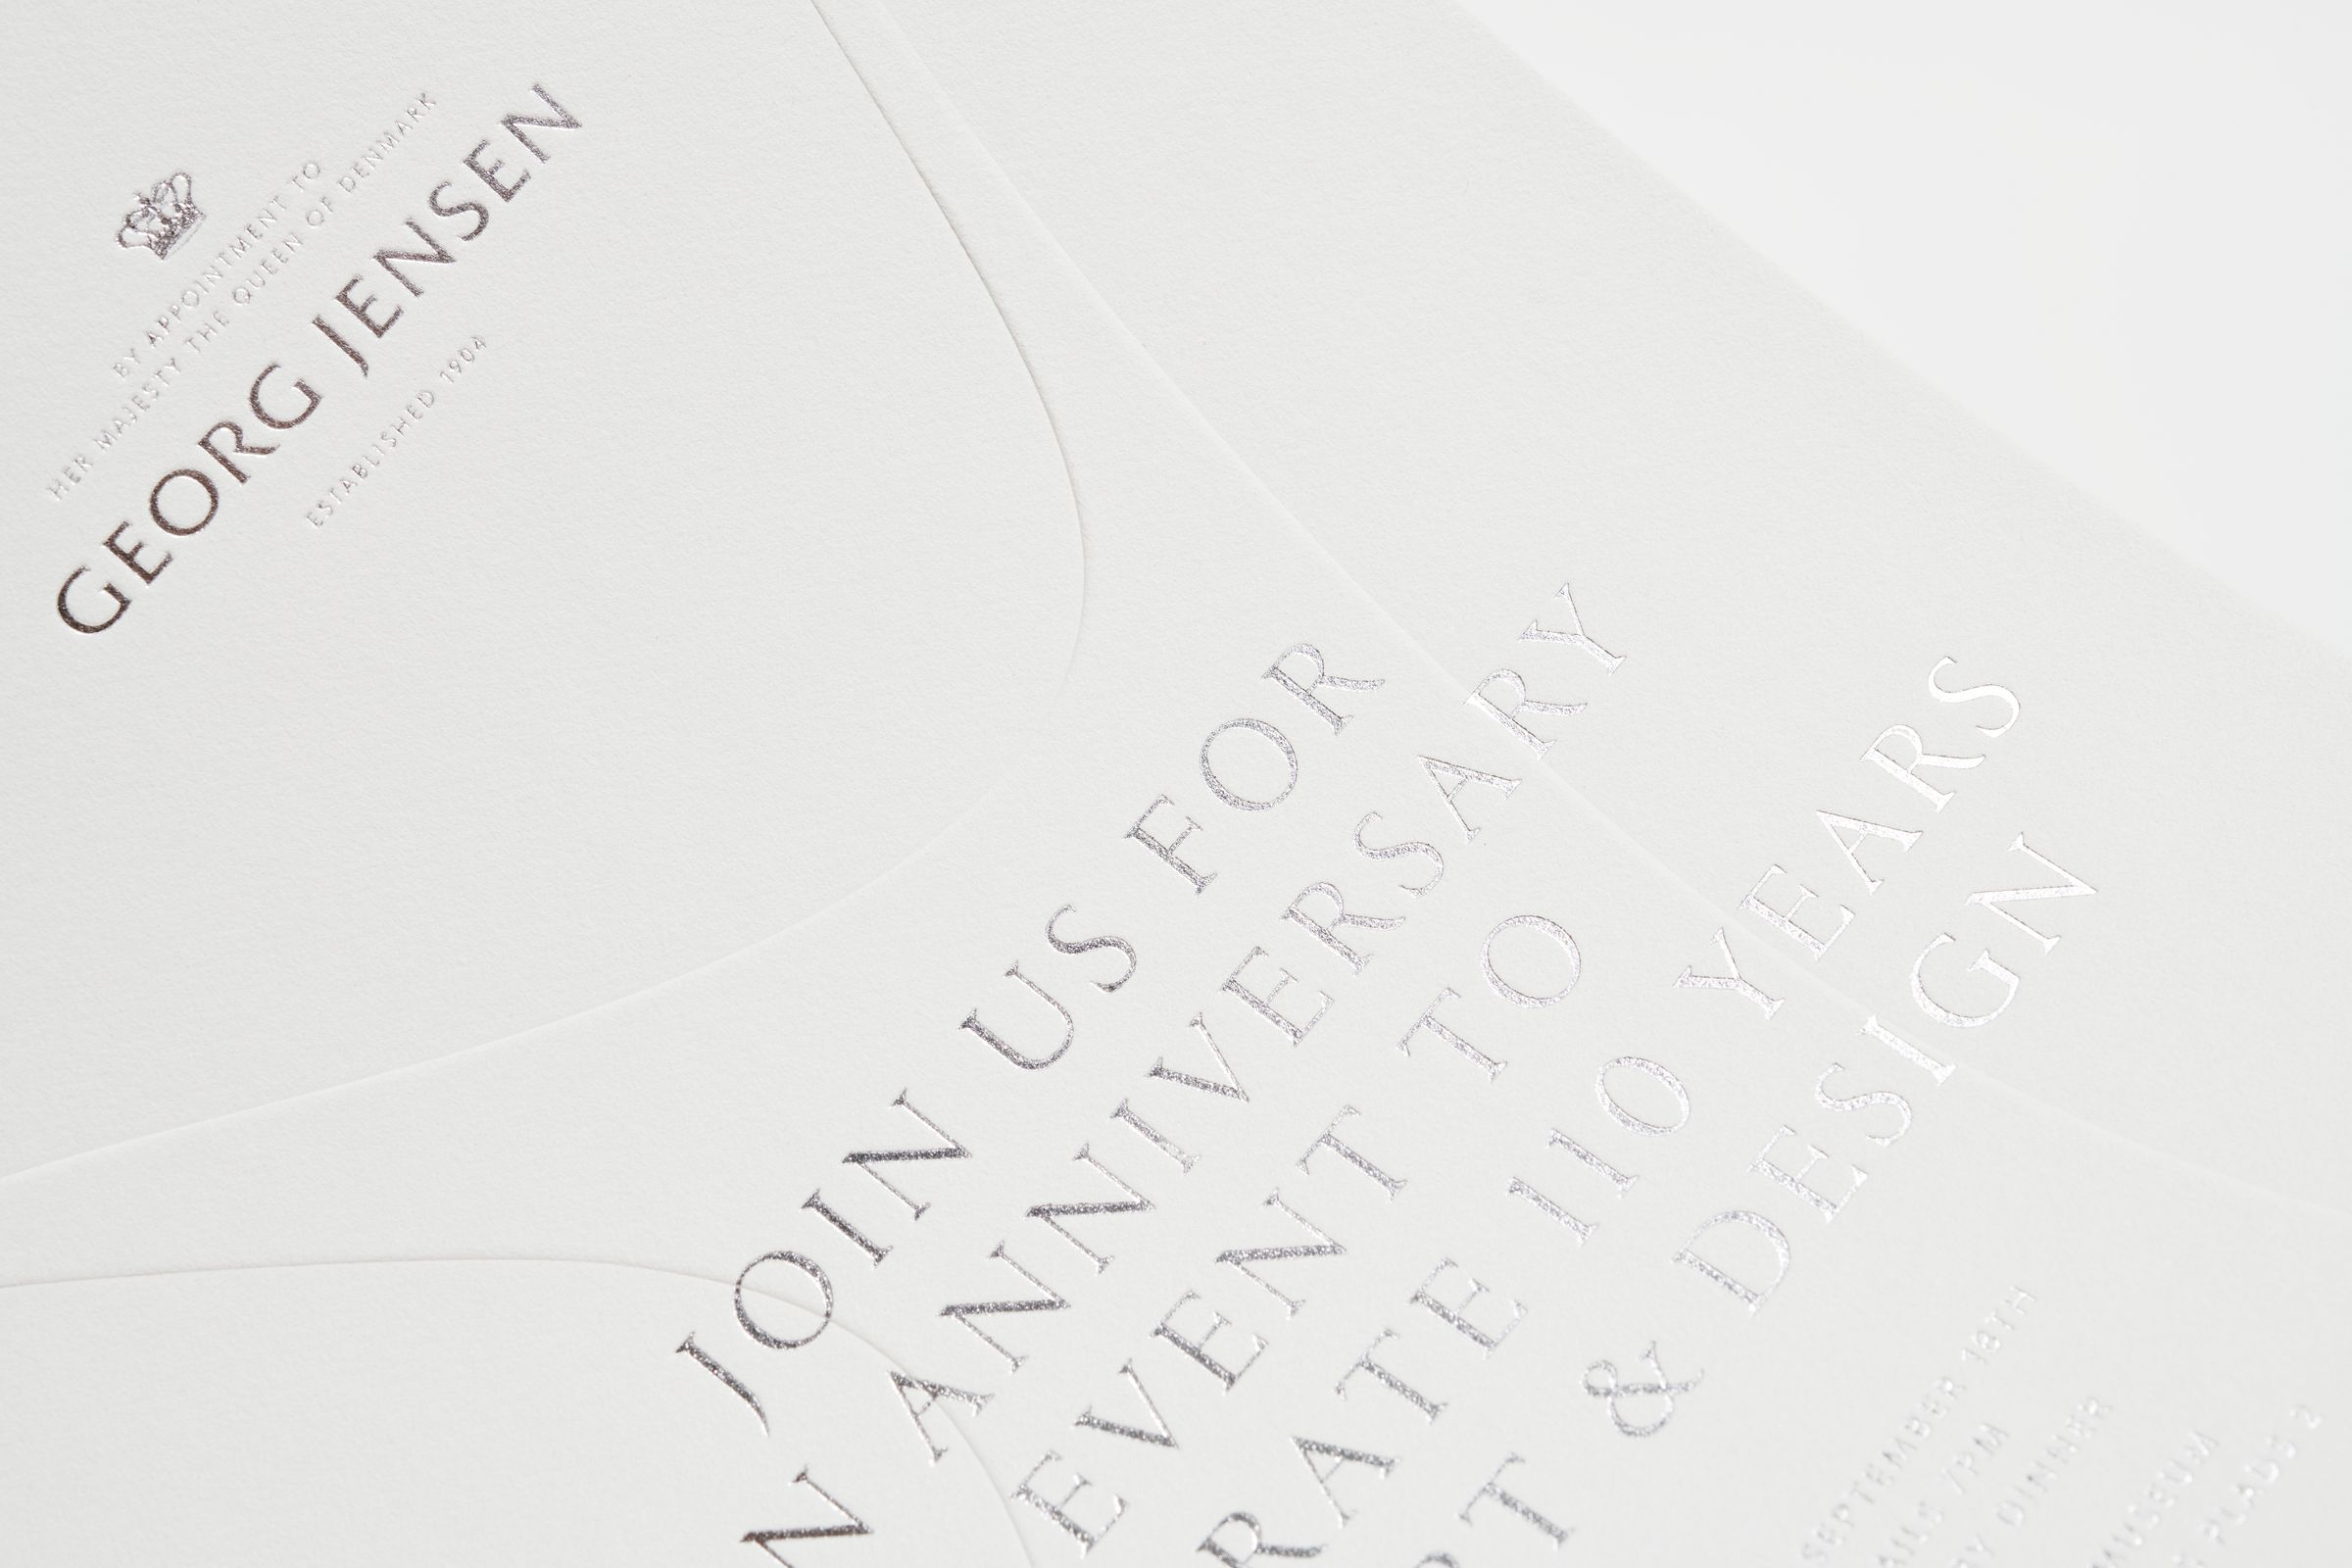 Detail of Georg Jensen invitation with silver foil and blind embossing